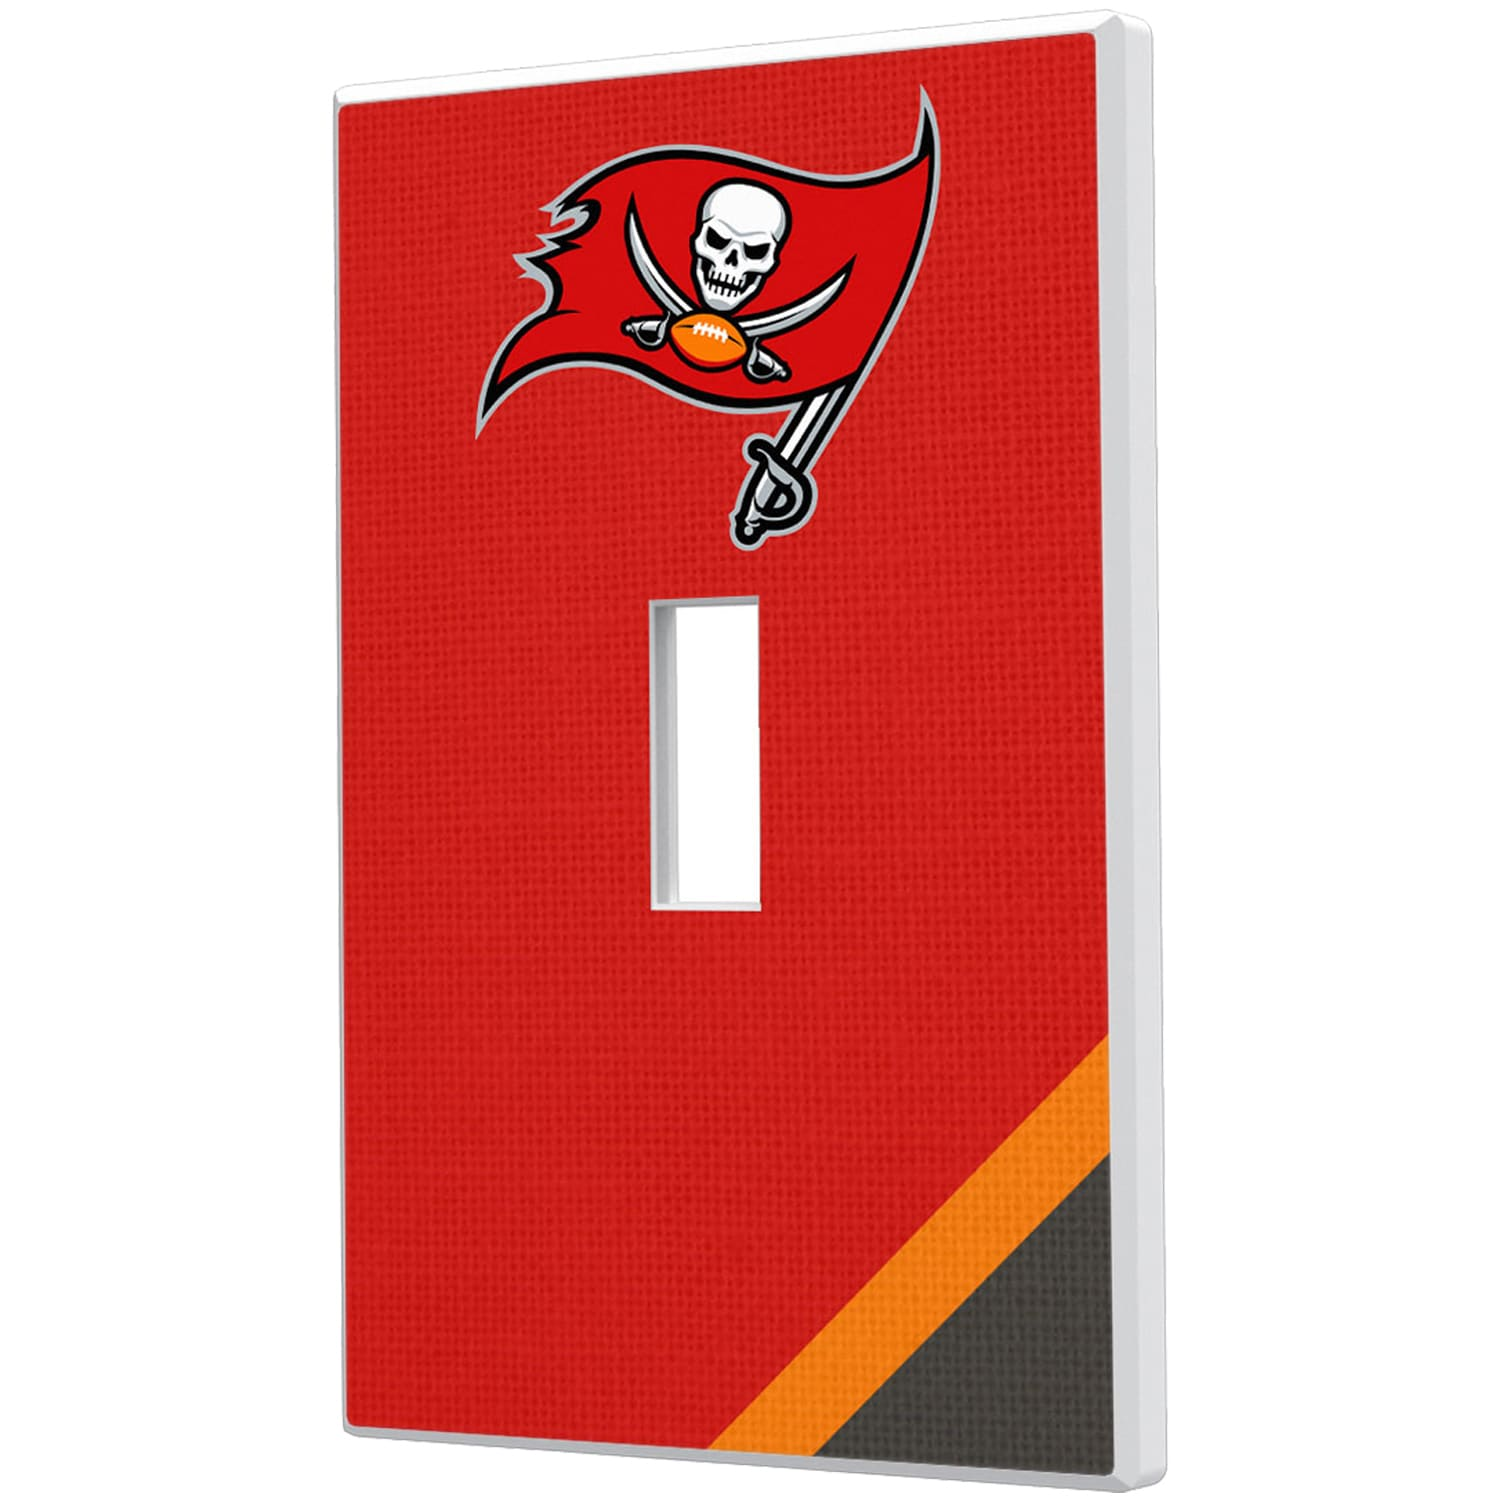 Tampa Bay Buccaneers Diagonal Stripe Single Toggle Light Switch Plate